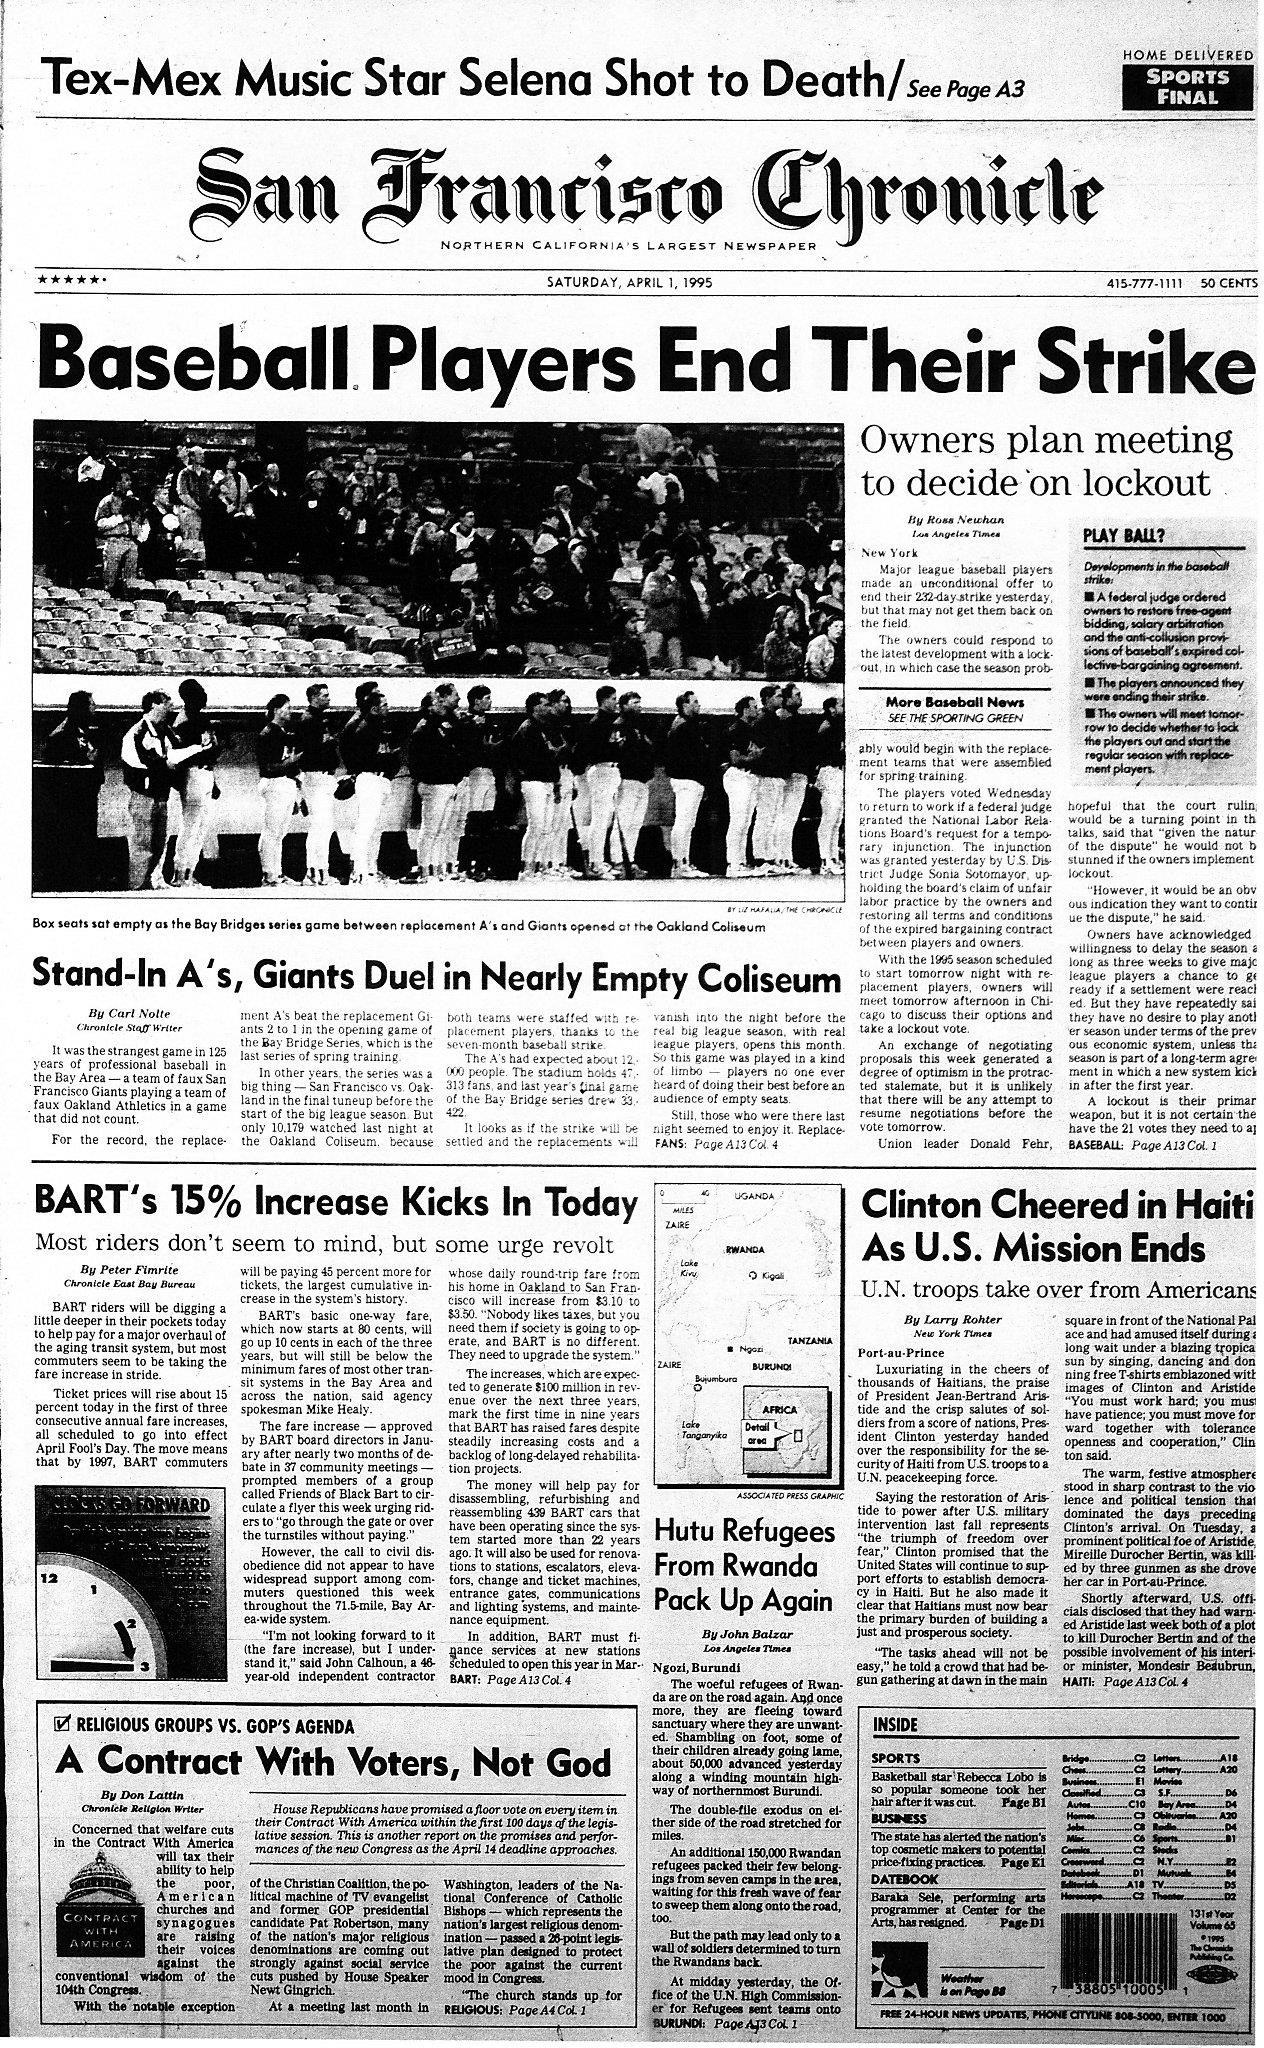 Chronicle Covers: When the end of the baseball strike was